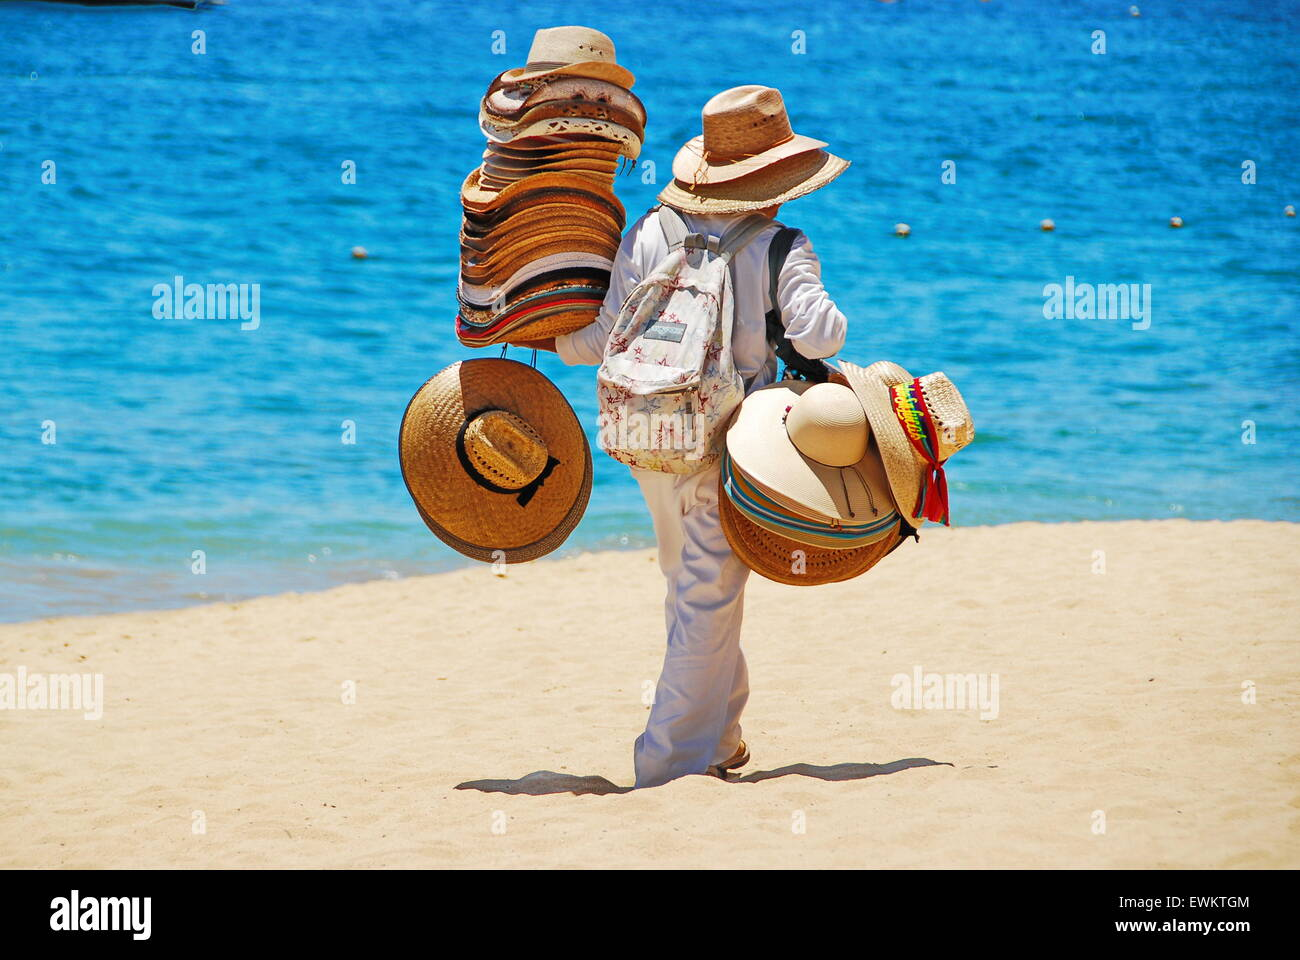 69898e1a5fcc8 Local man selling straw hats on the beach in Cabo San Lucas